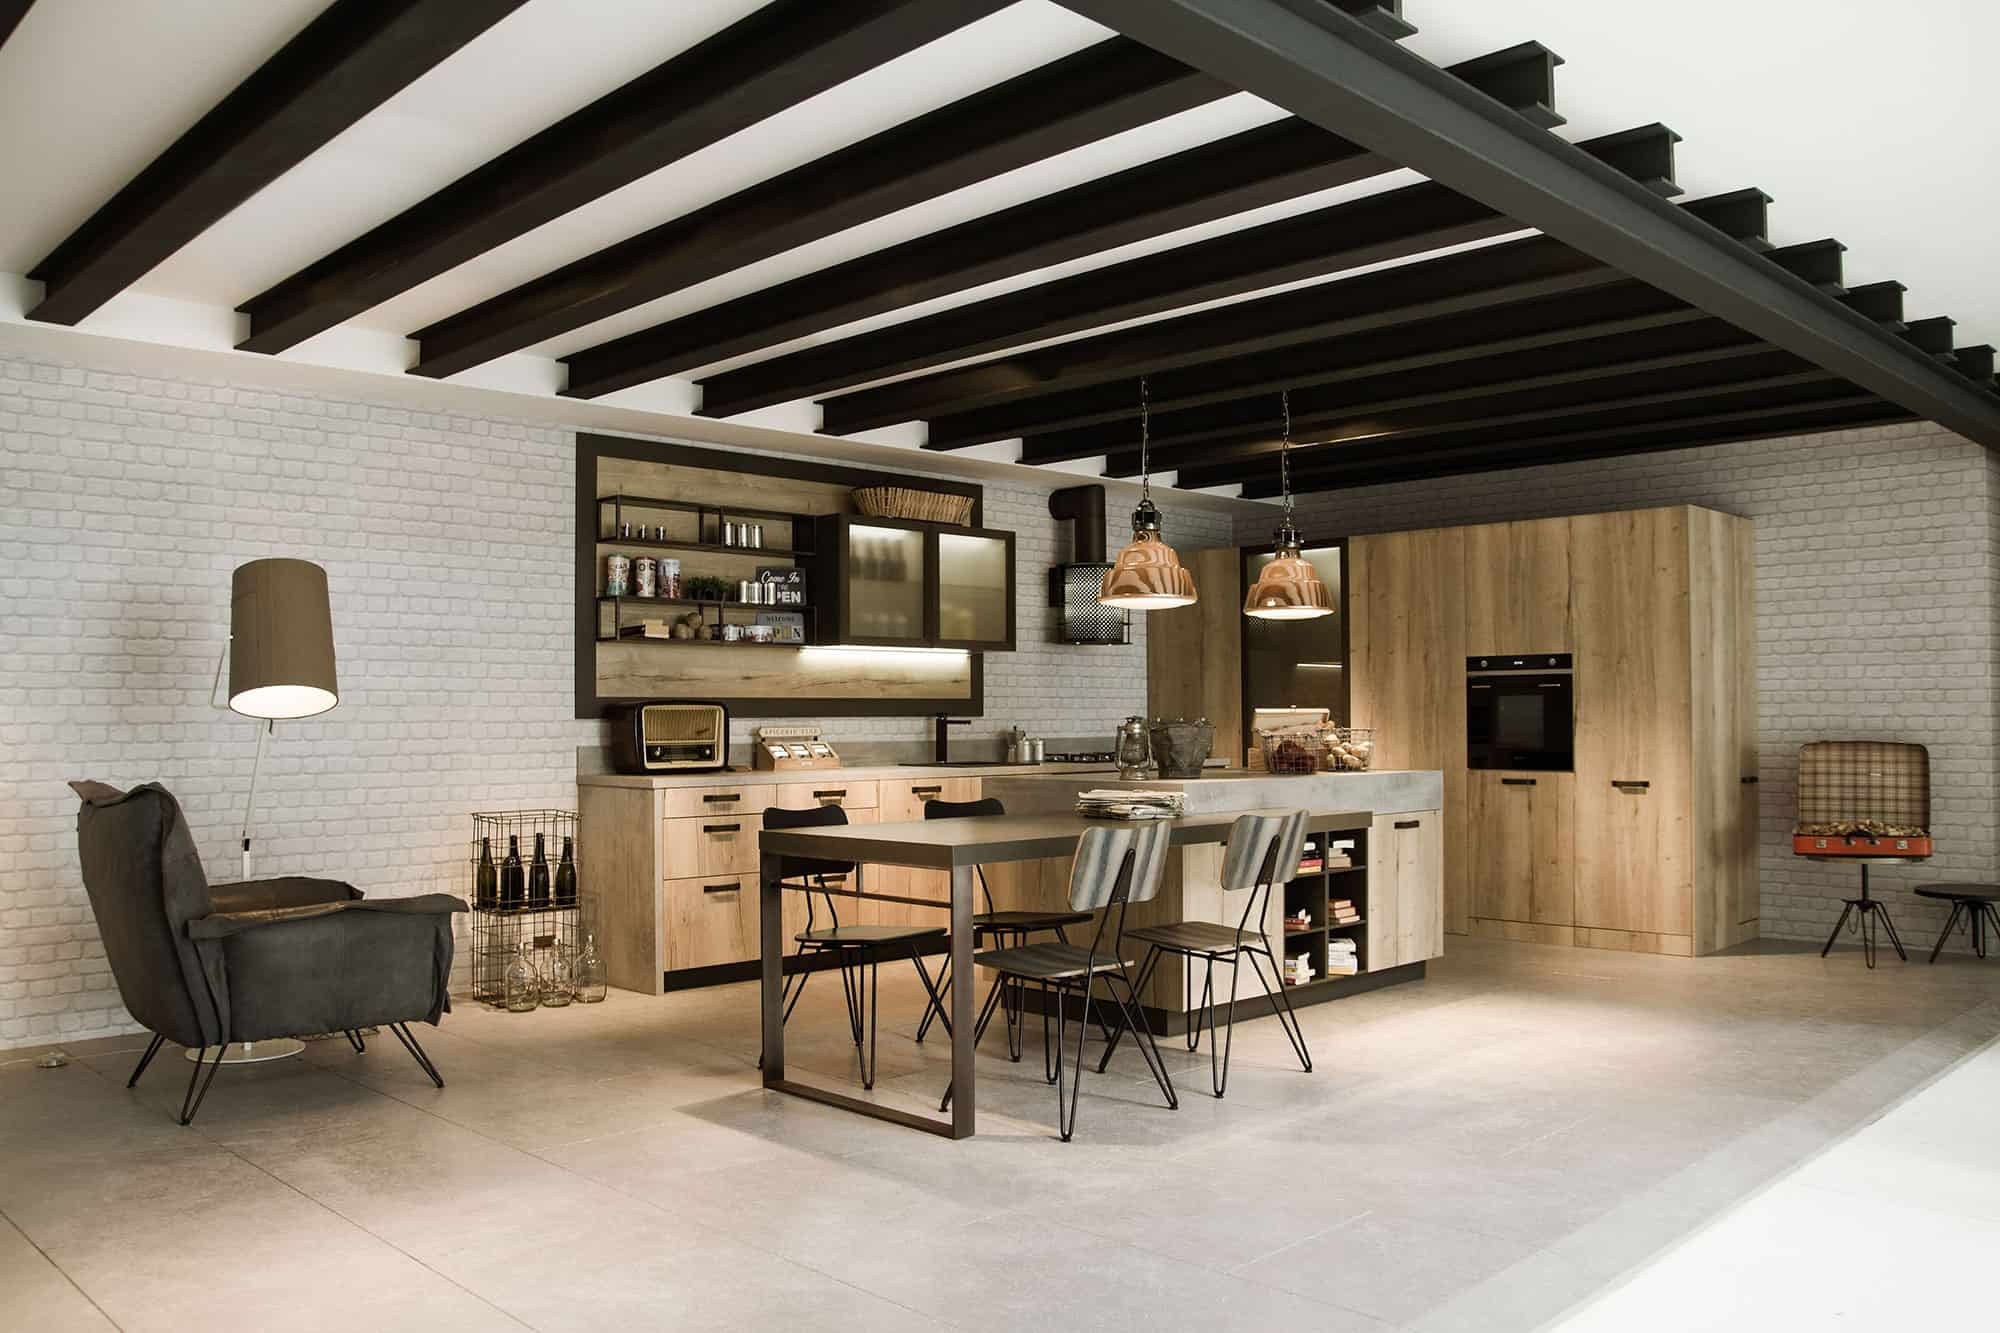 Loft Kitchen Ideas Awesome Kitchen Design For Lofts 3 Urban Ideas From Snaidero